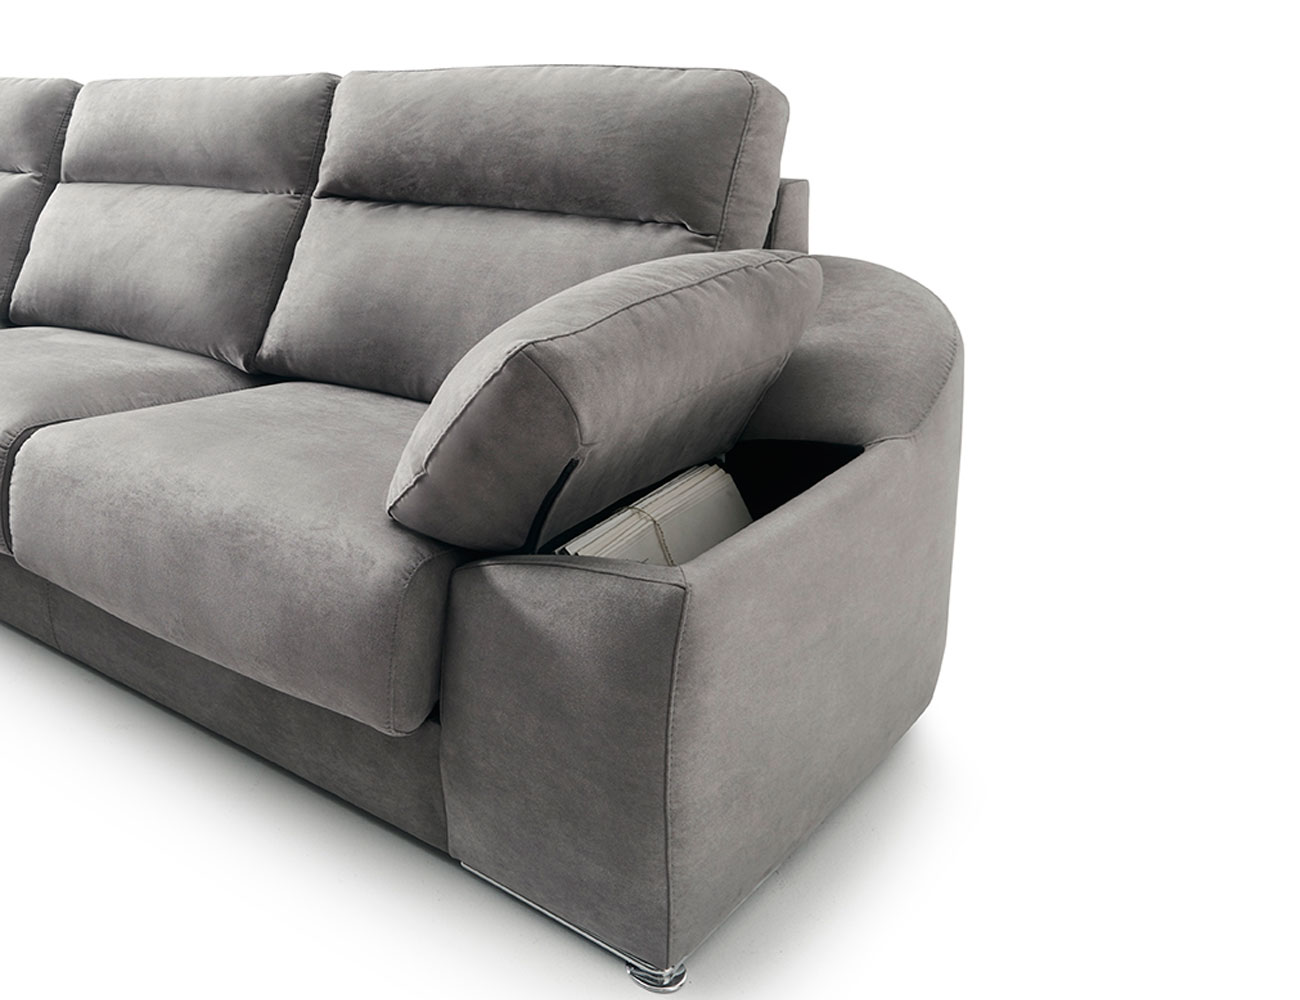 Sofa chaiselongue asientos viscolastica pedro ortiz 31